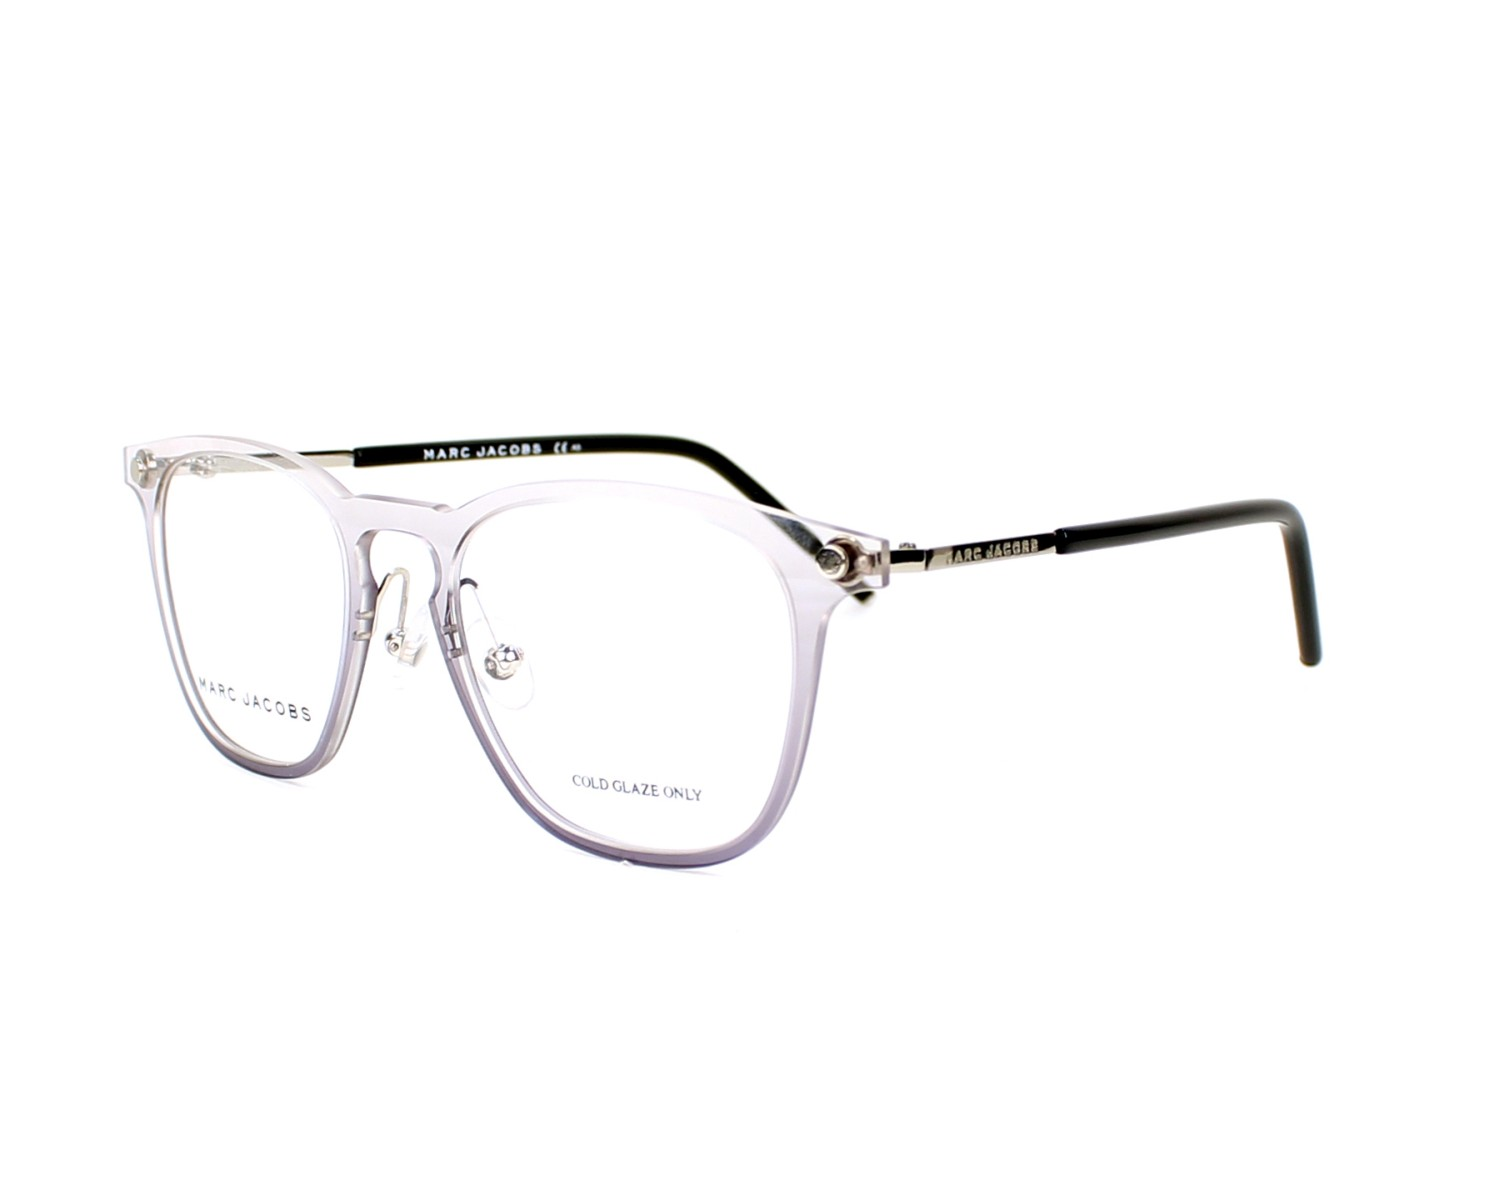 84e7120ff3 Marc Jacobs - Buy Marc Jacobs eyeglasses online at low prices